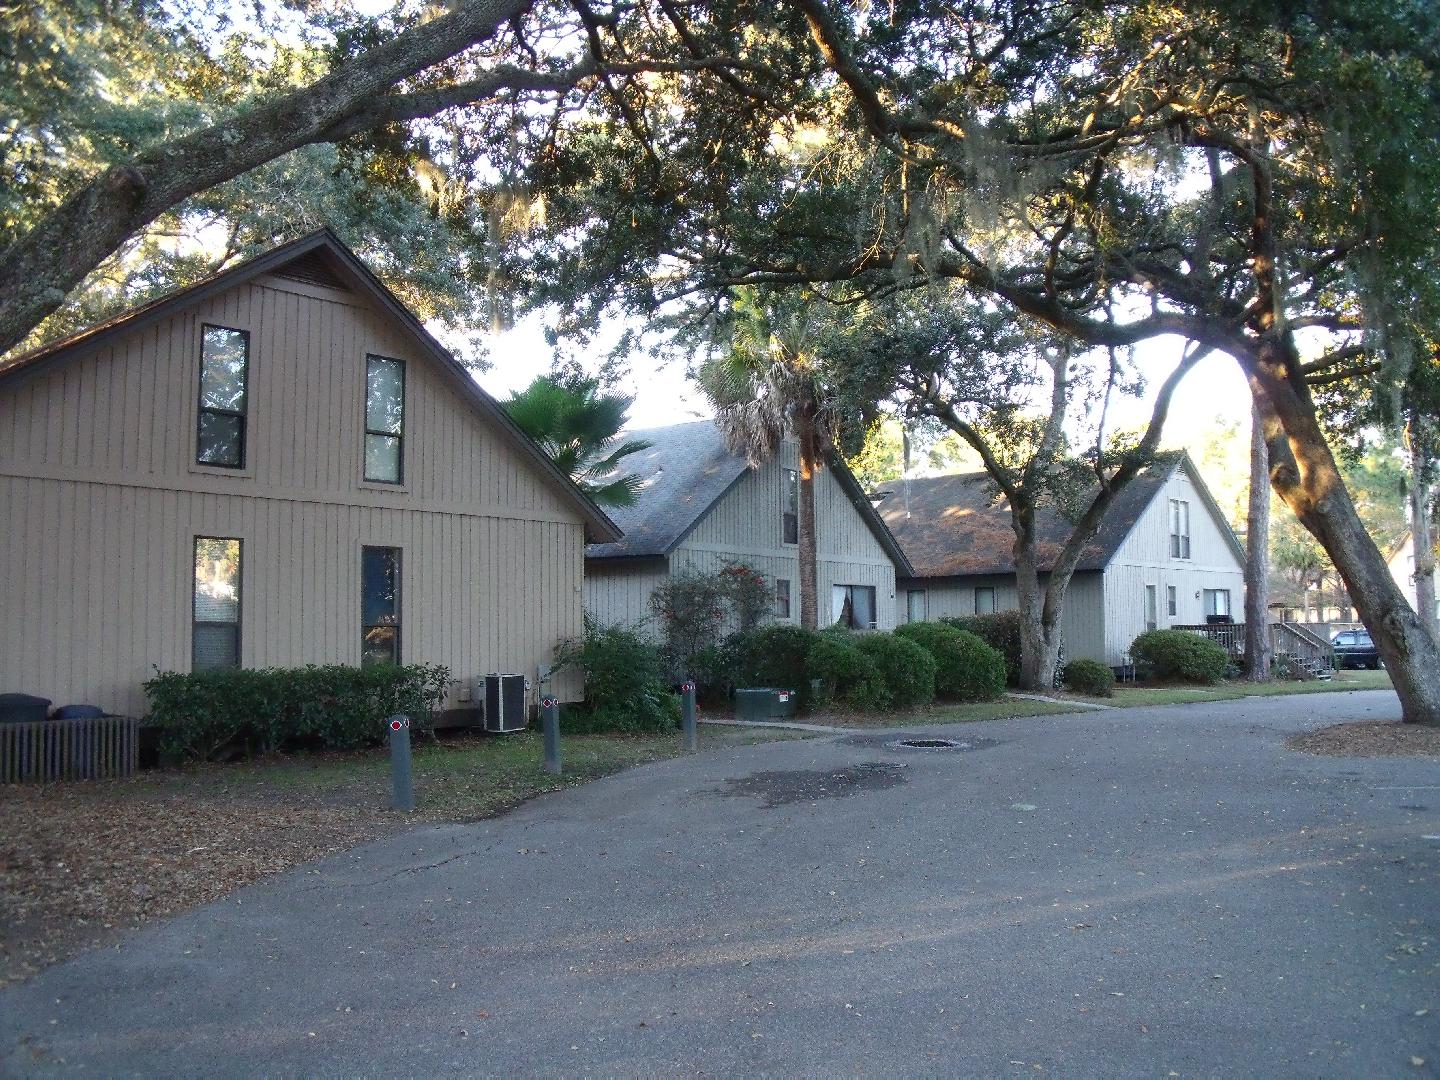 Hilton head island realty and rentals for Closest fishing store